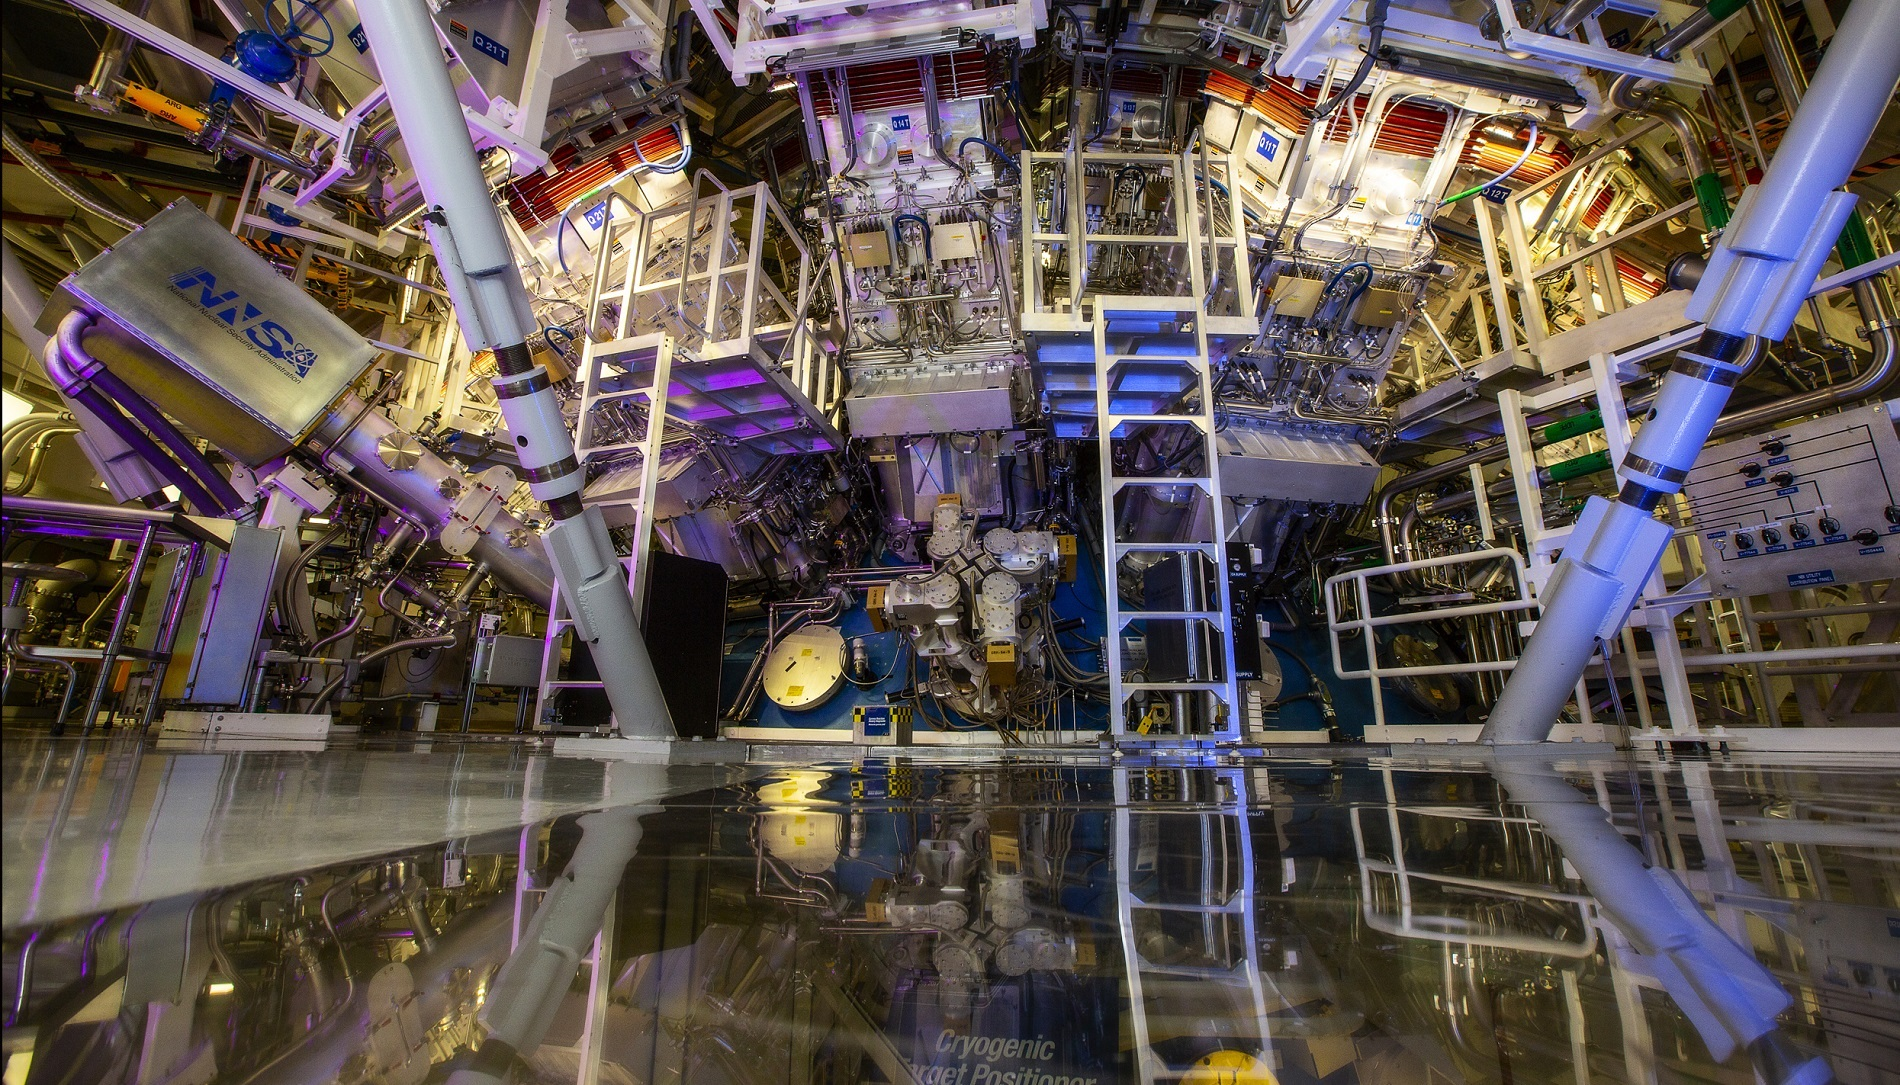 NIF's target chamber is where the magic happens -- temperatures of 100 million degrees and pressures extreme enough to compress the target to densities up to 100 times that of lead are created there